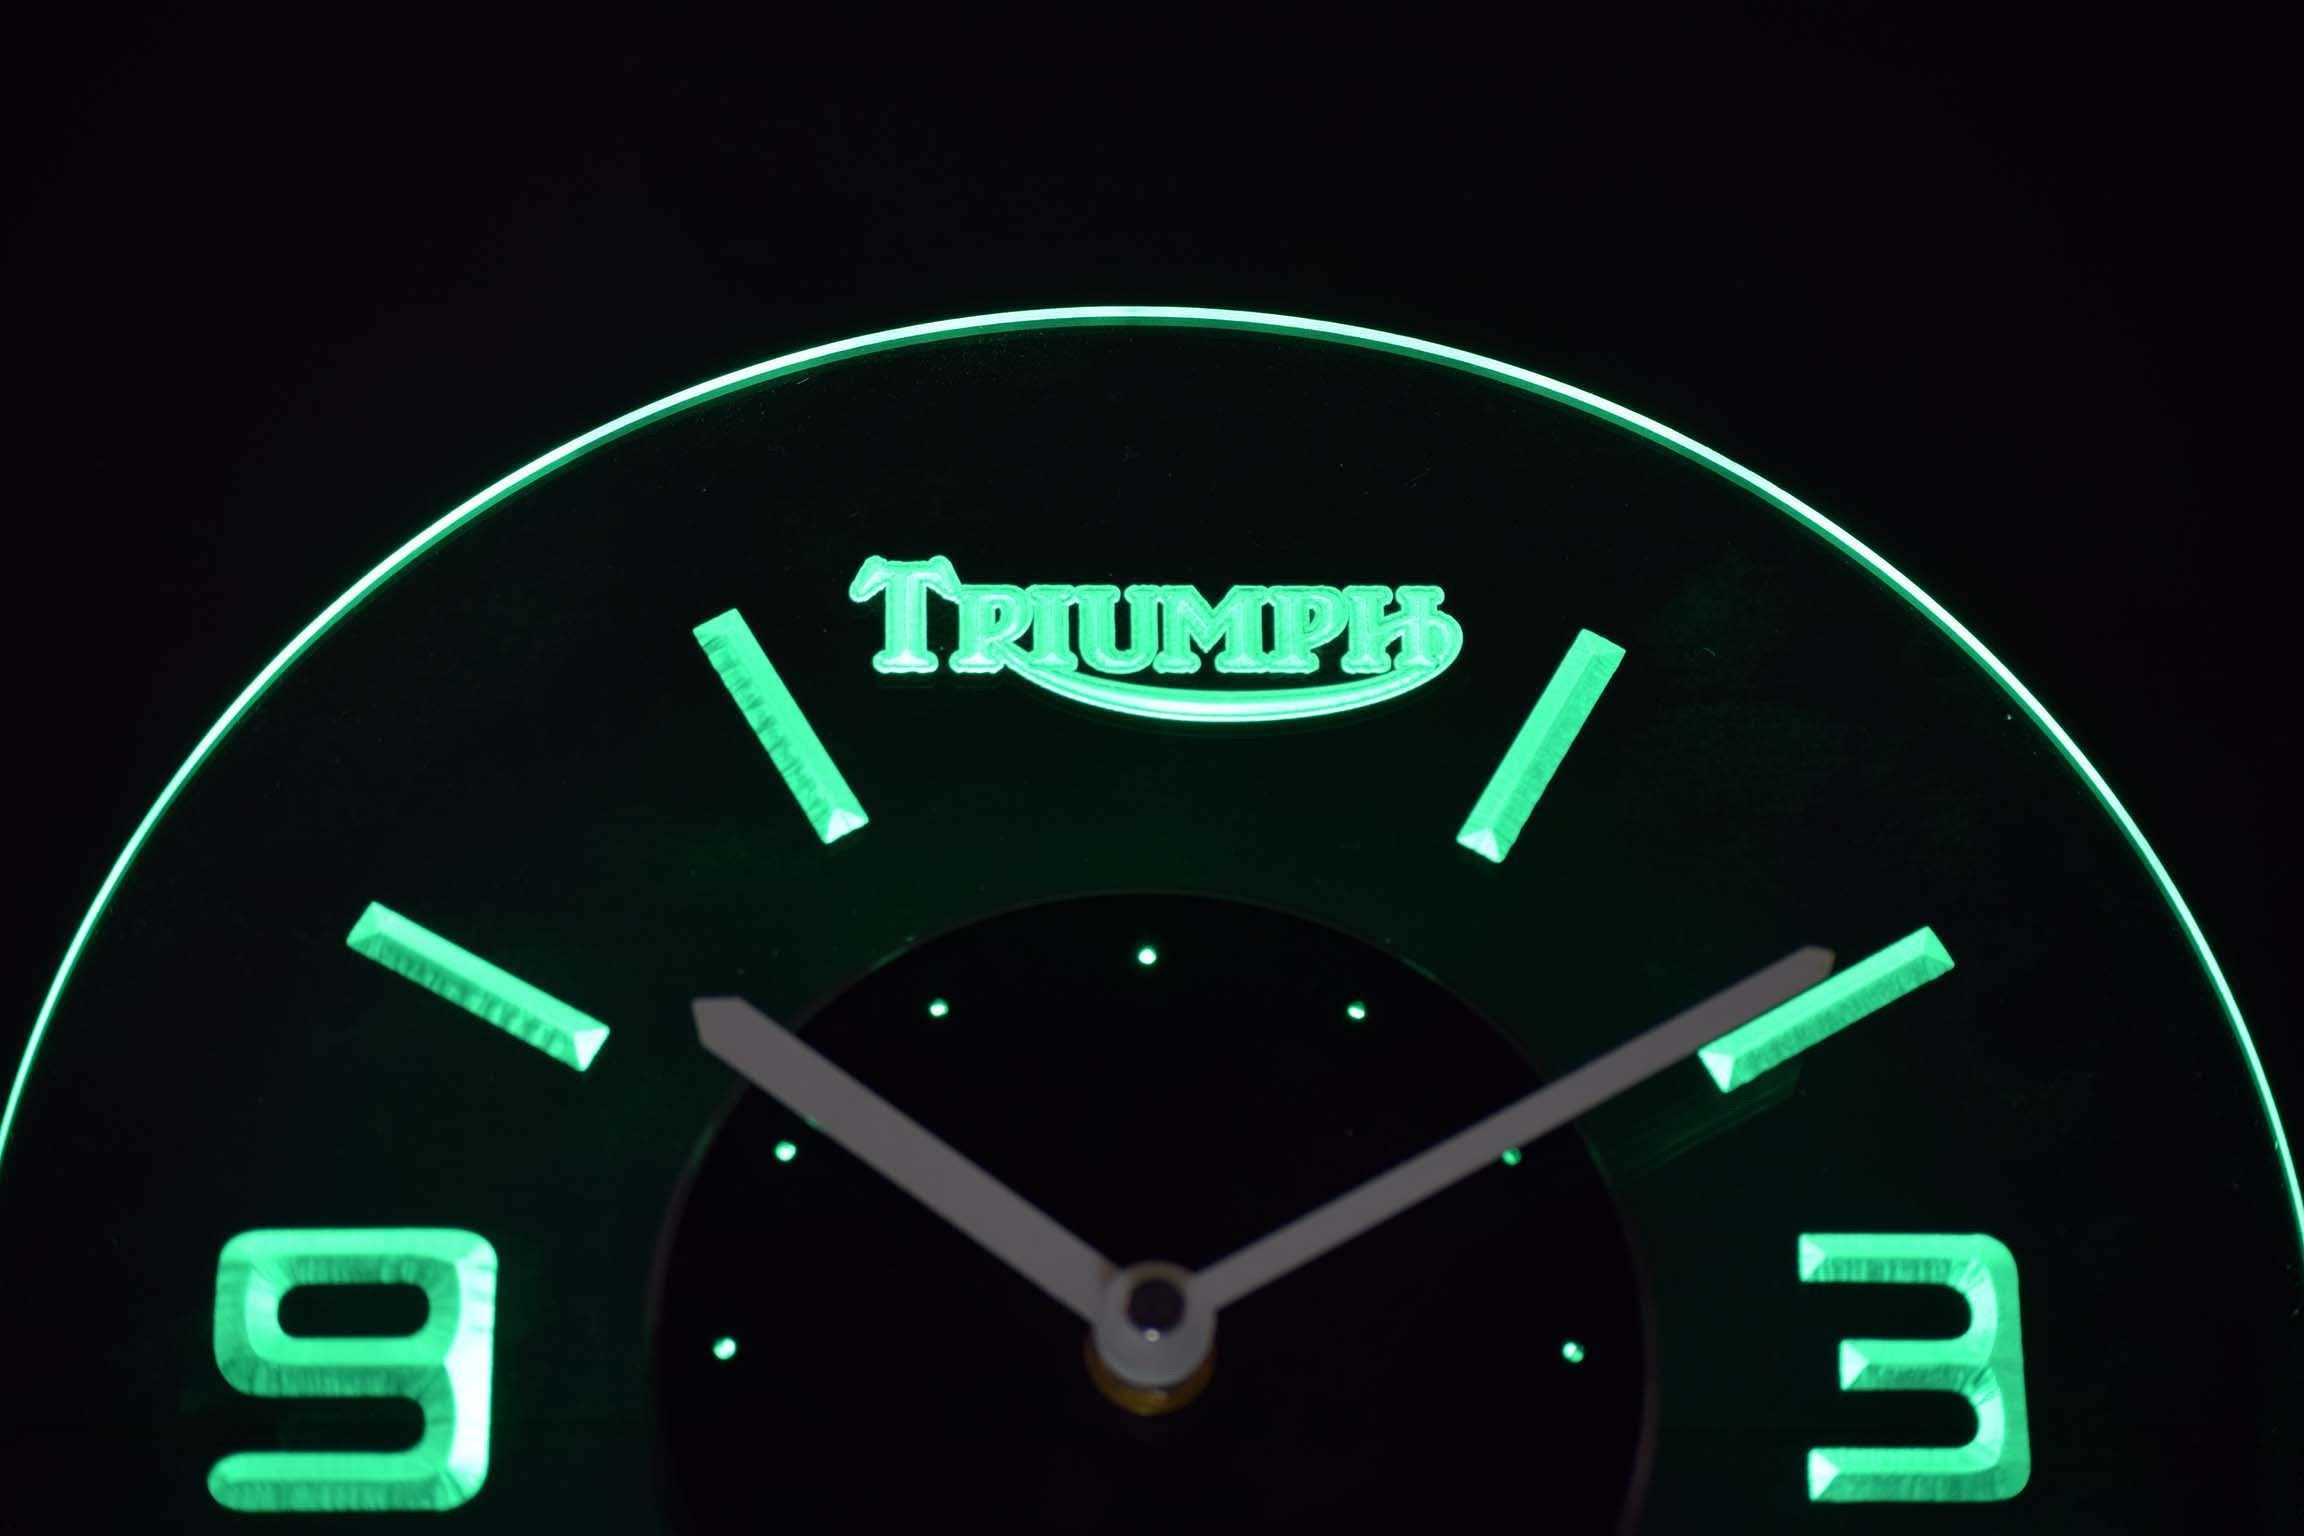 Triumph Old Logo Modern Led Neon Wall Clock Safespecial